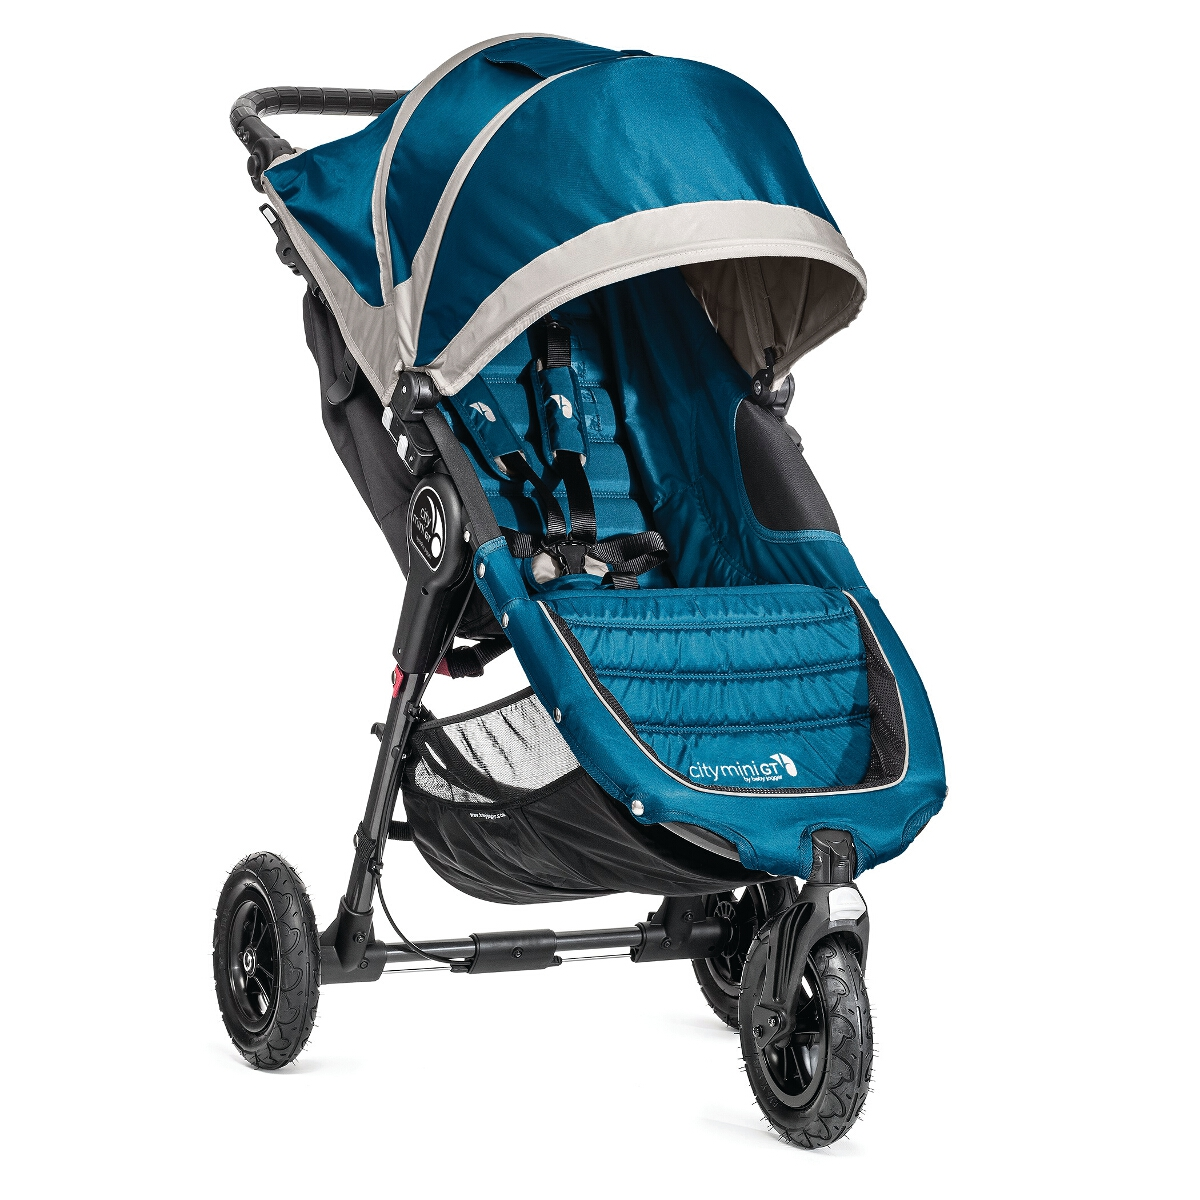 Baby Jogger City Mini GT Single Stroller, Turquoise/Blue (Turq/Aqua)